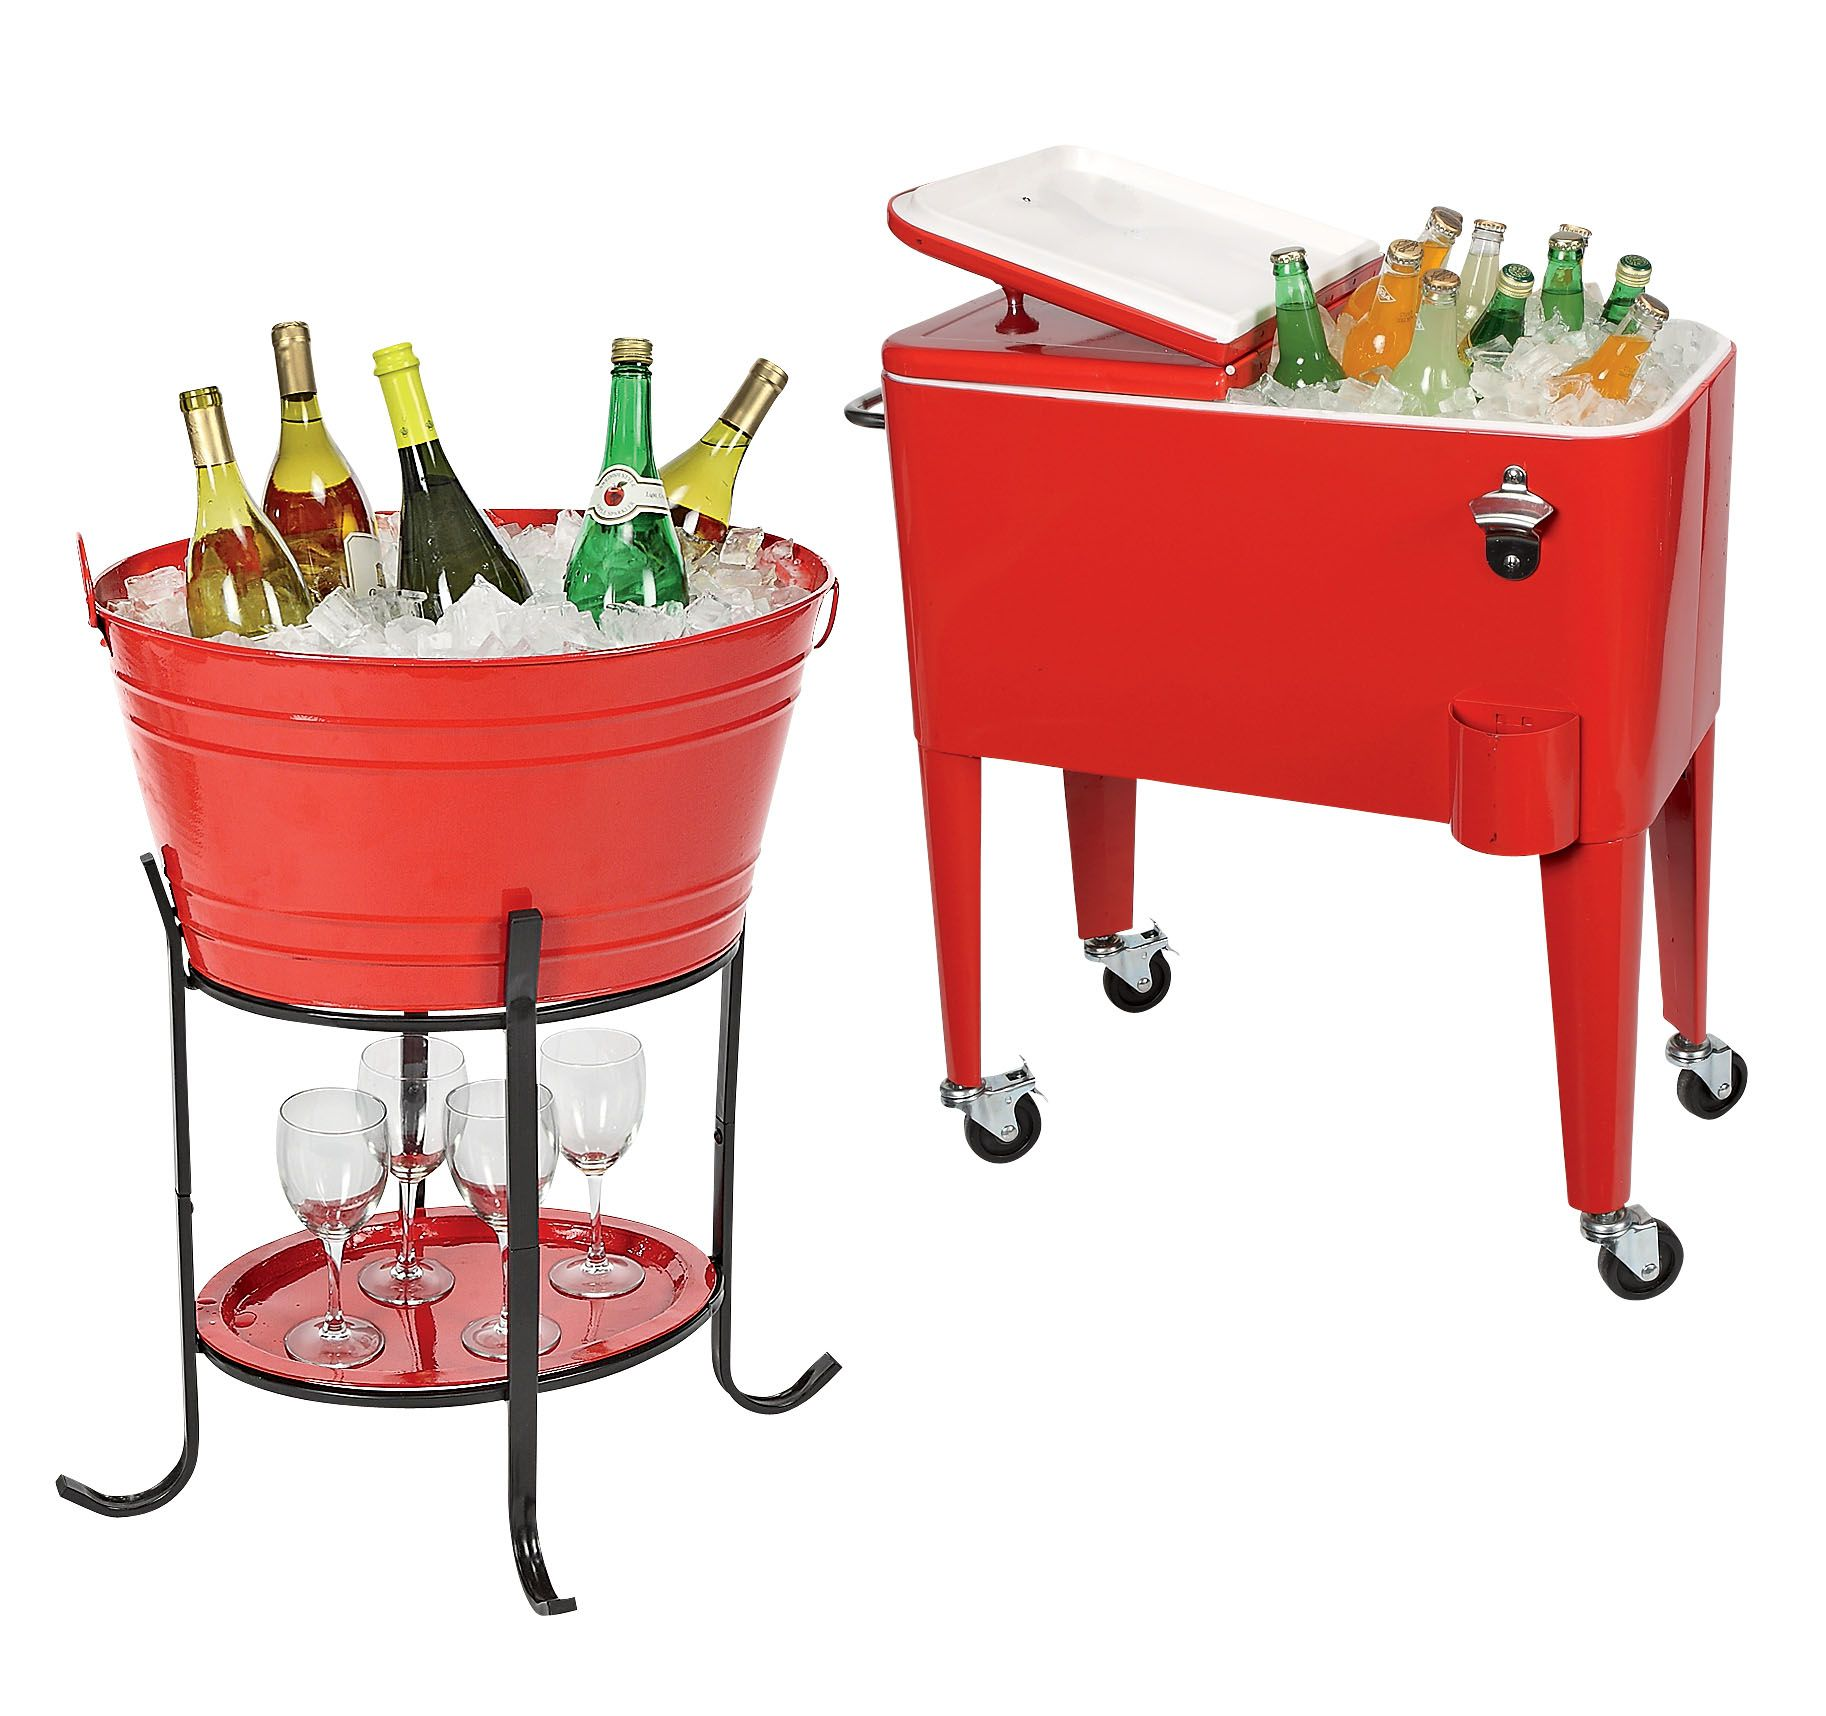 A Party Tub Or Cooler Make The Perfect Accessory For Your Backyard